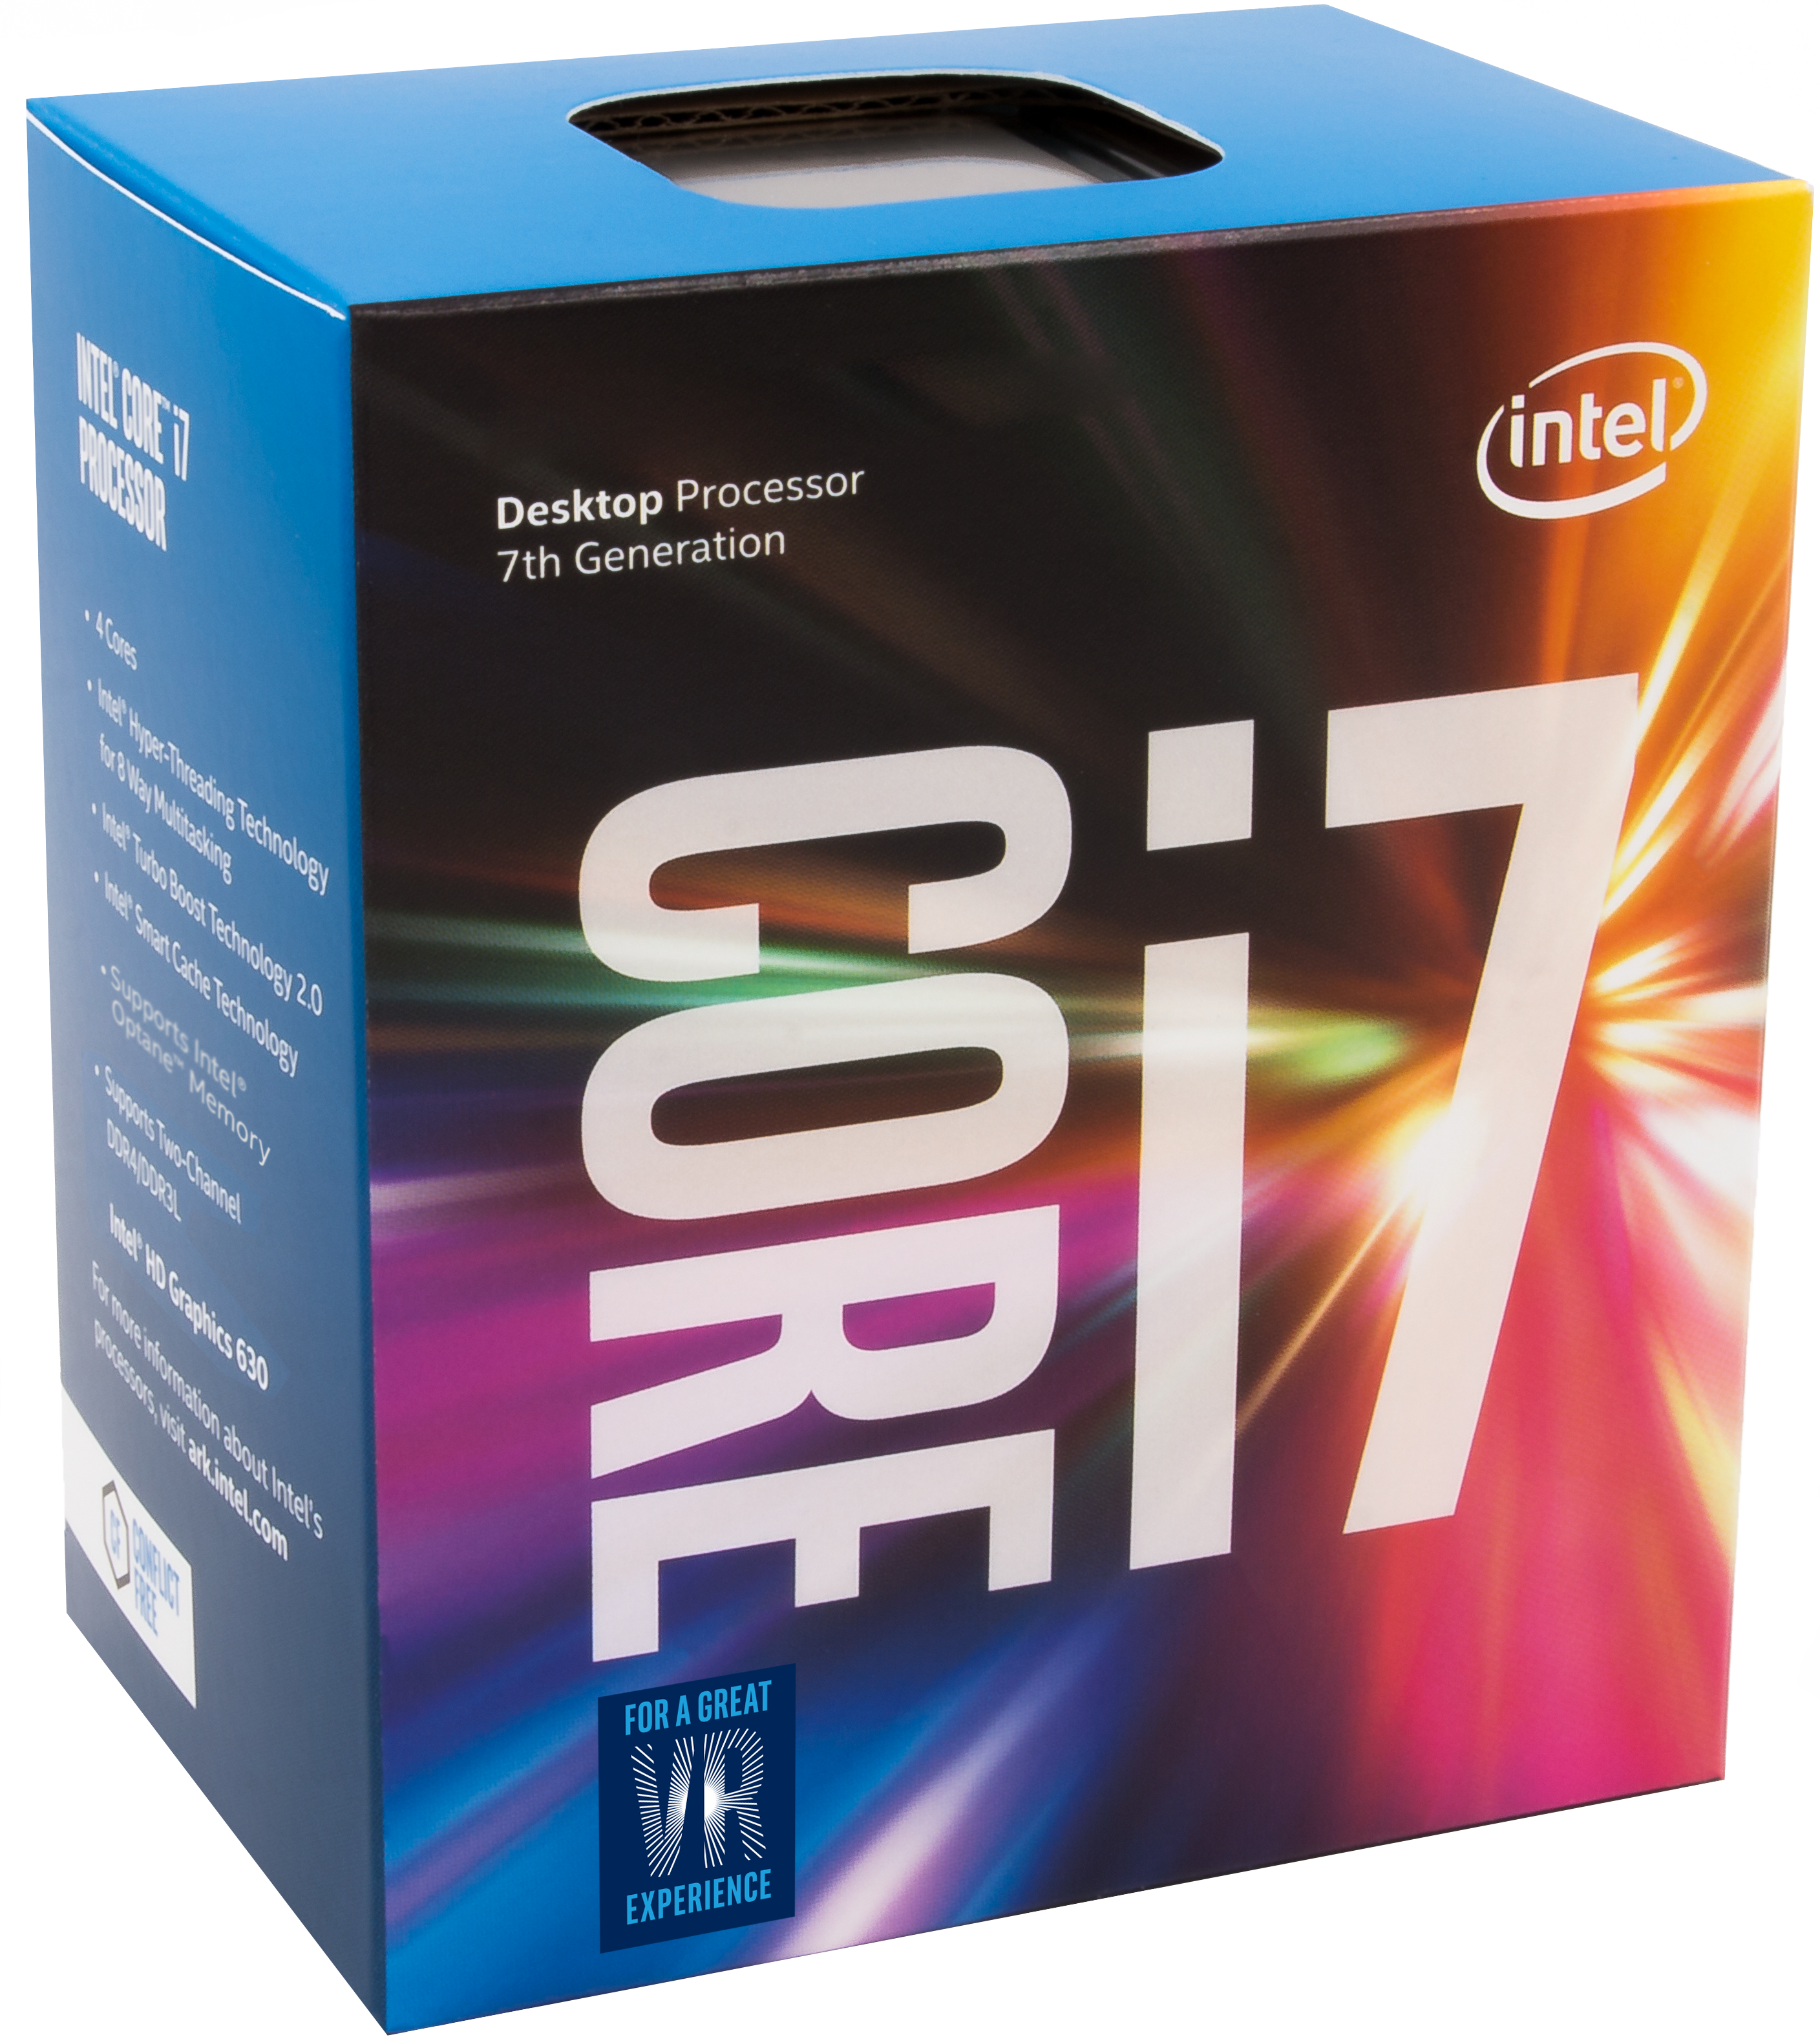 The Intel Core i7-7700K (91W) Review: The New Out-of-the-box